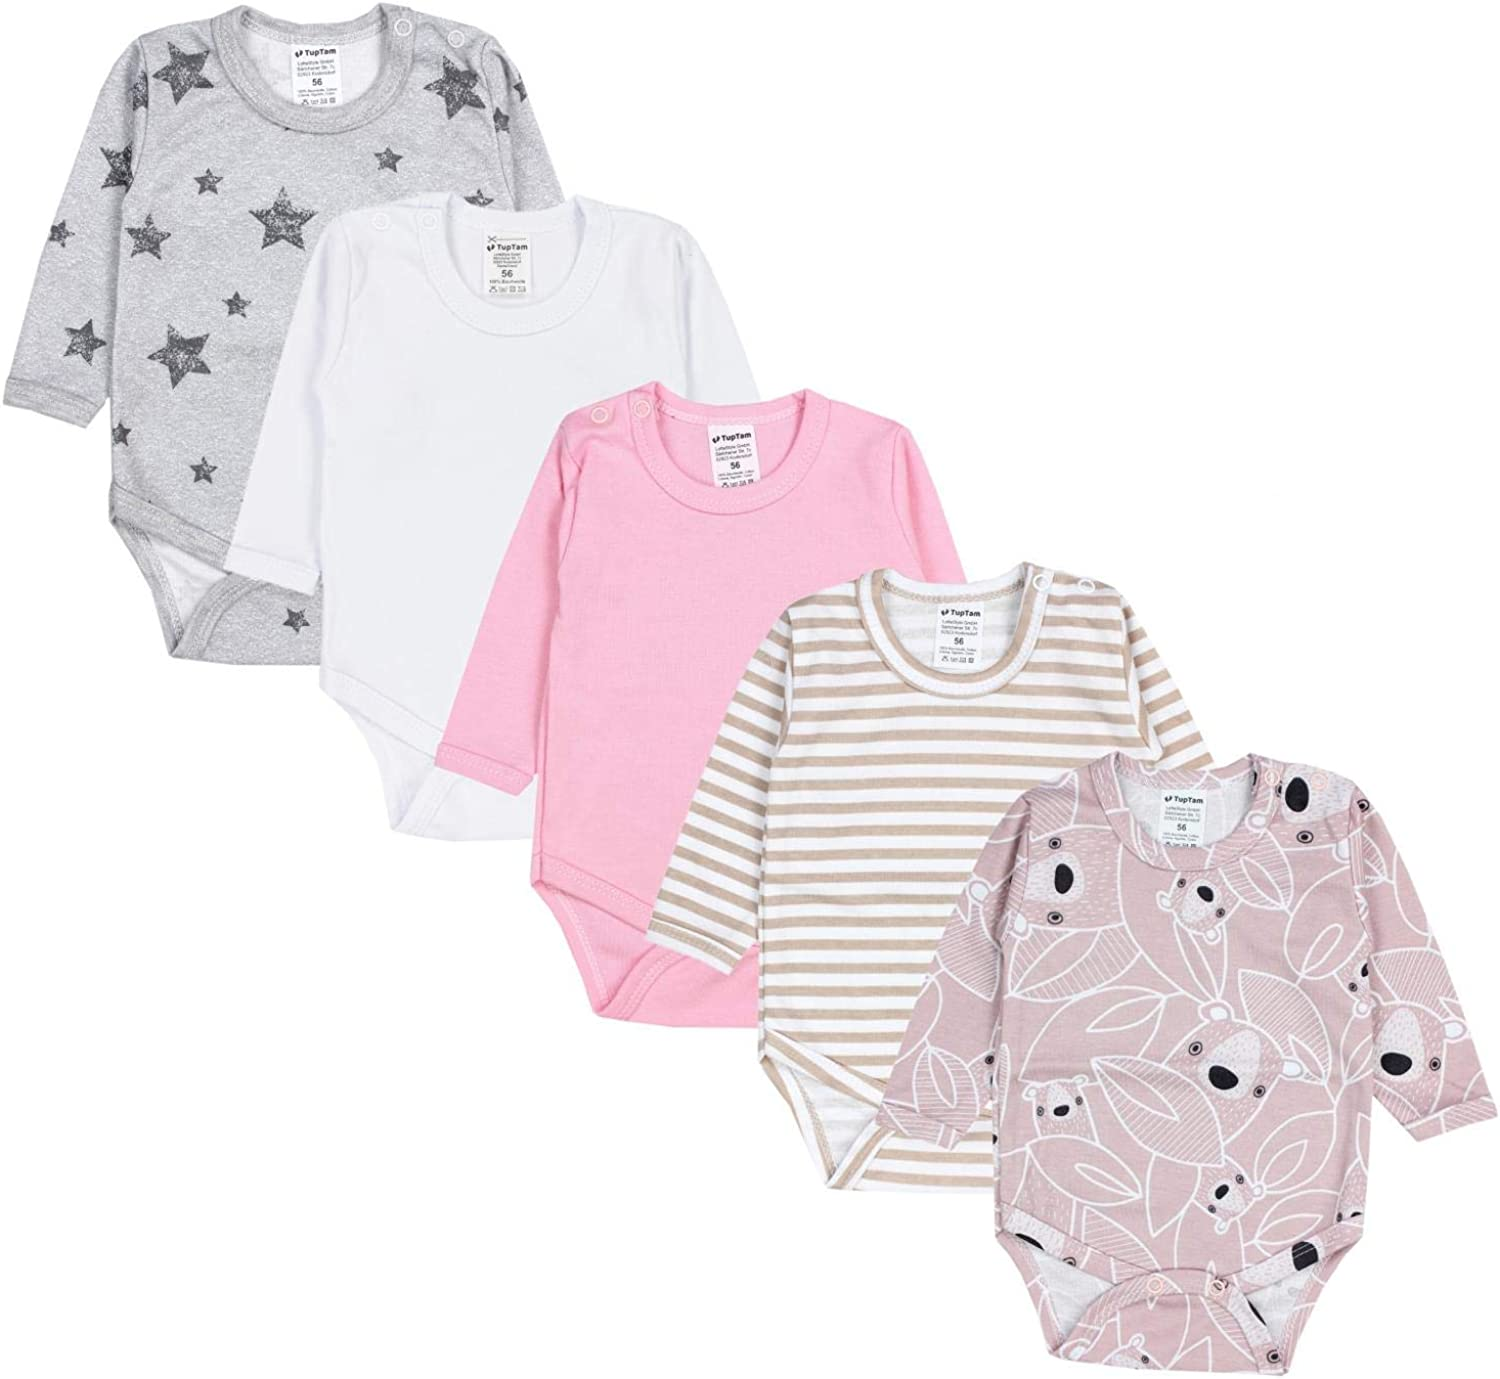 TupTam Baby Girls Bodysuits Long Sleeve Plain Pack of 5